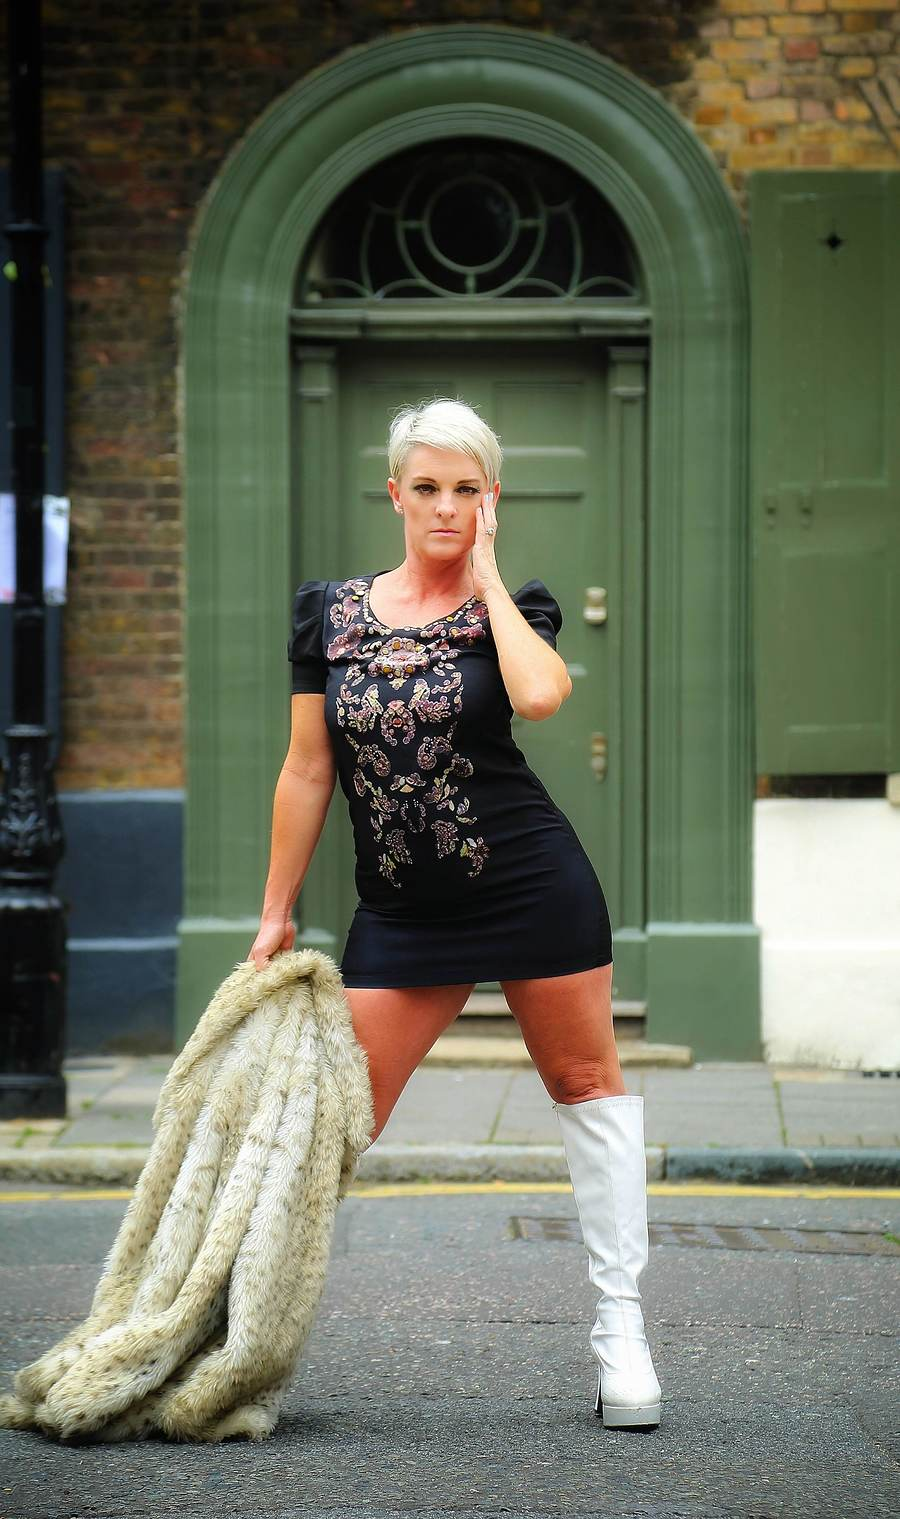 WHITECHAPEL SHOOT / Photography by Andy T1, Model Kylie Britain / Uploaded 29th August 2018 @ 05:21 PM